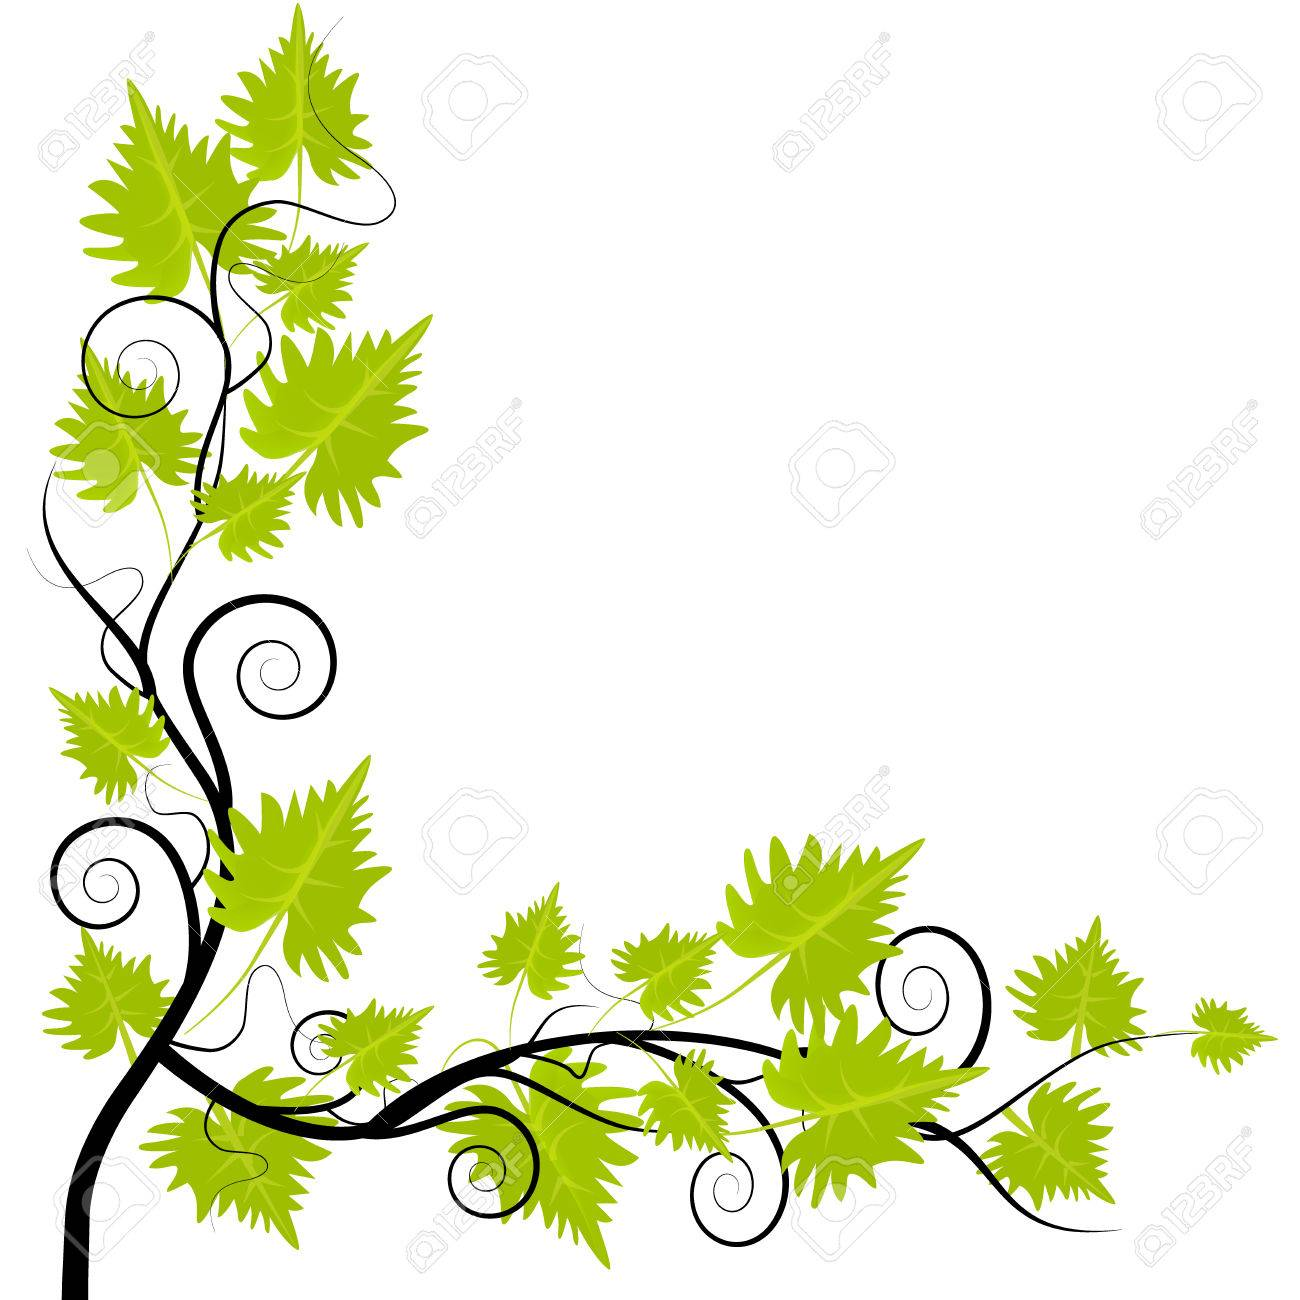 Grapevine leafs frame on white background - 62464623